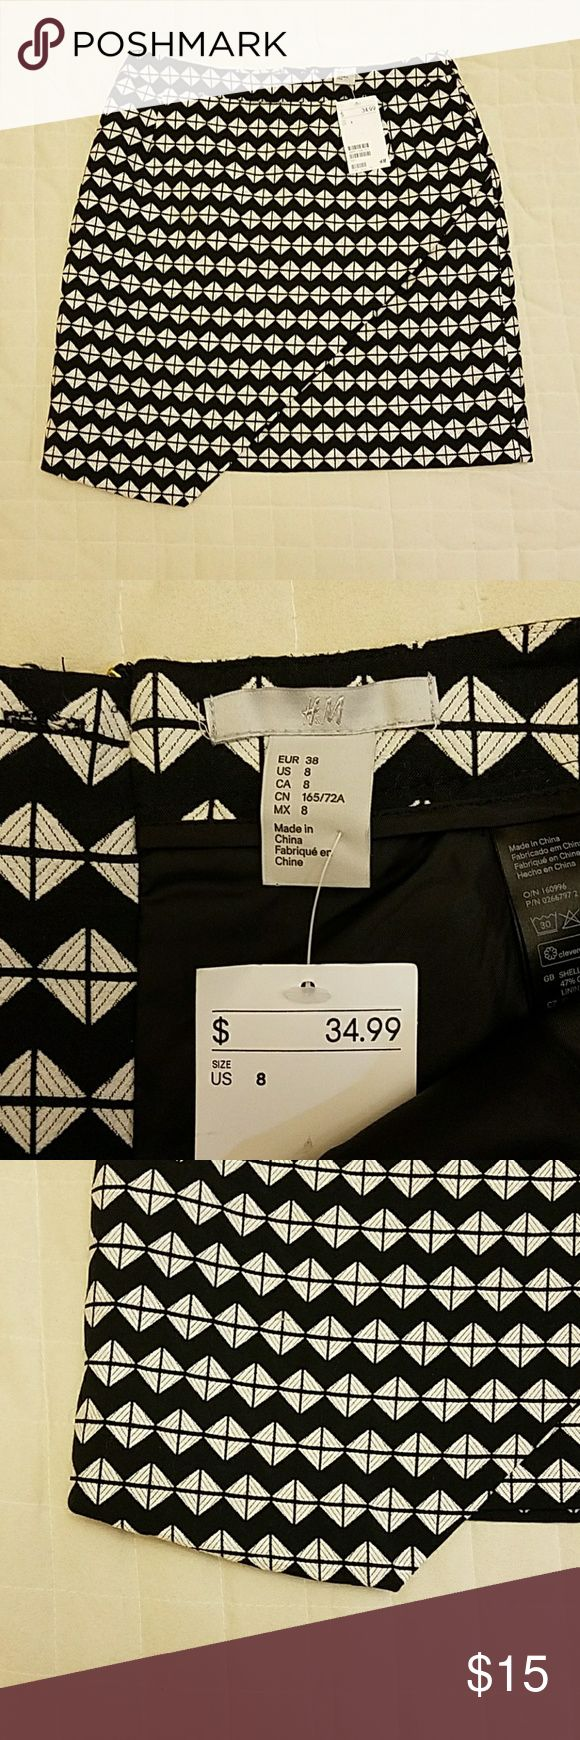 """H&M Geometric Mini Skirt size 8 Statement-making black-and-white geometric patterned H&M mini-skirt!  This adorable skirt has a asymmetrical/faux-wrap style hem that gives that extra bit of oomph to your outfit.   Wears well for work or play, day or night.    14"""" top 18.5"""" hip 20"""" bottom 17"""" length H&M Skirts Mini"""